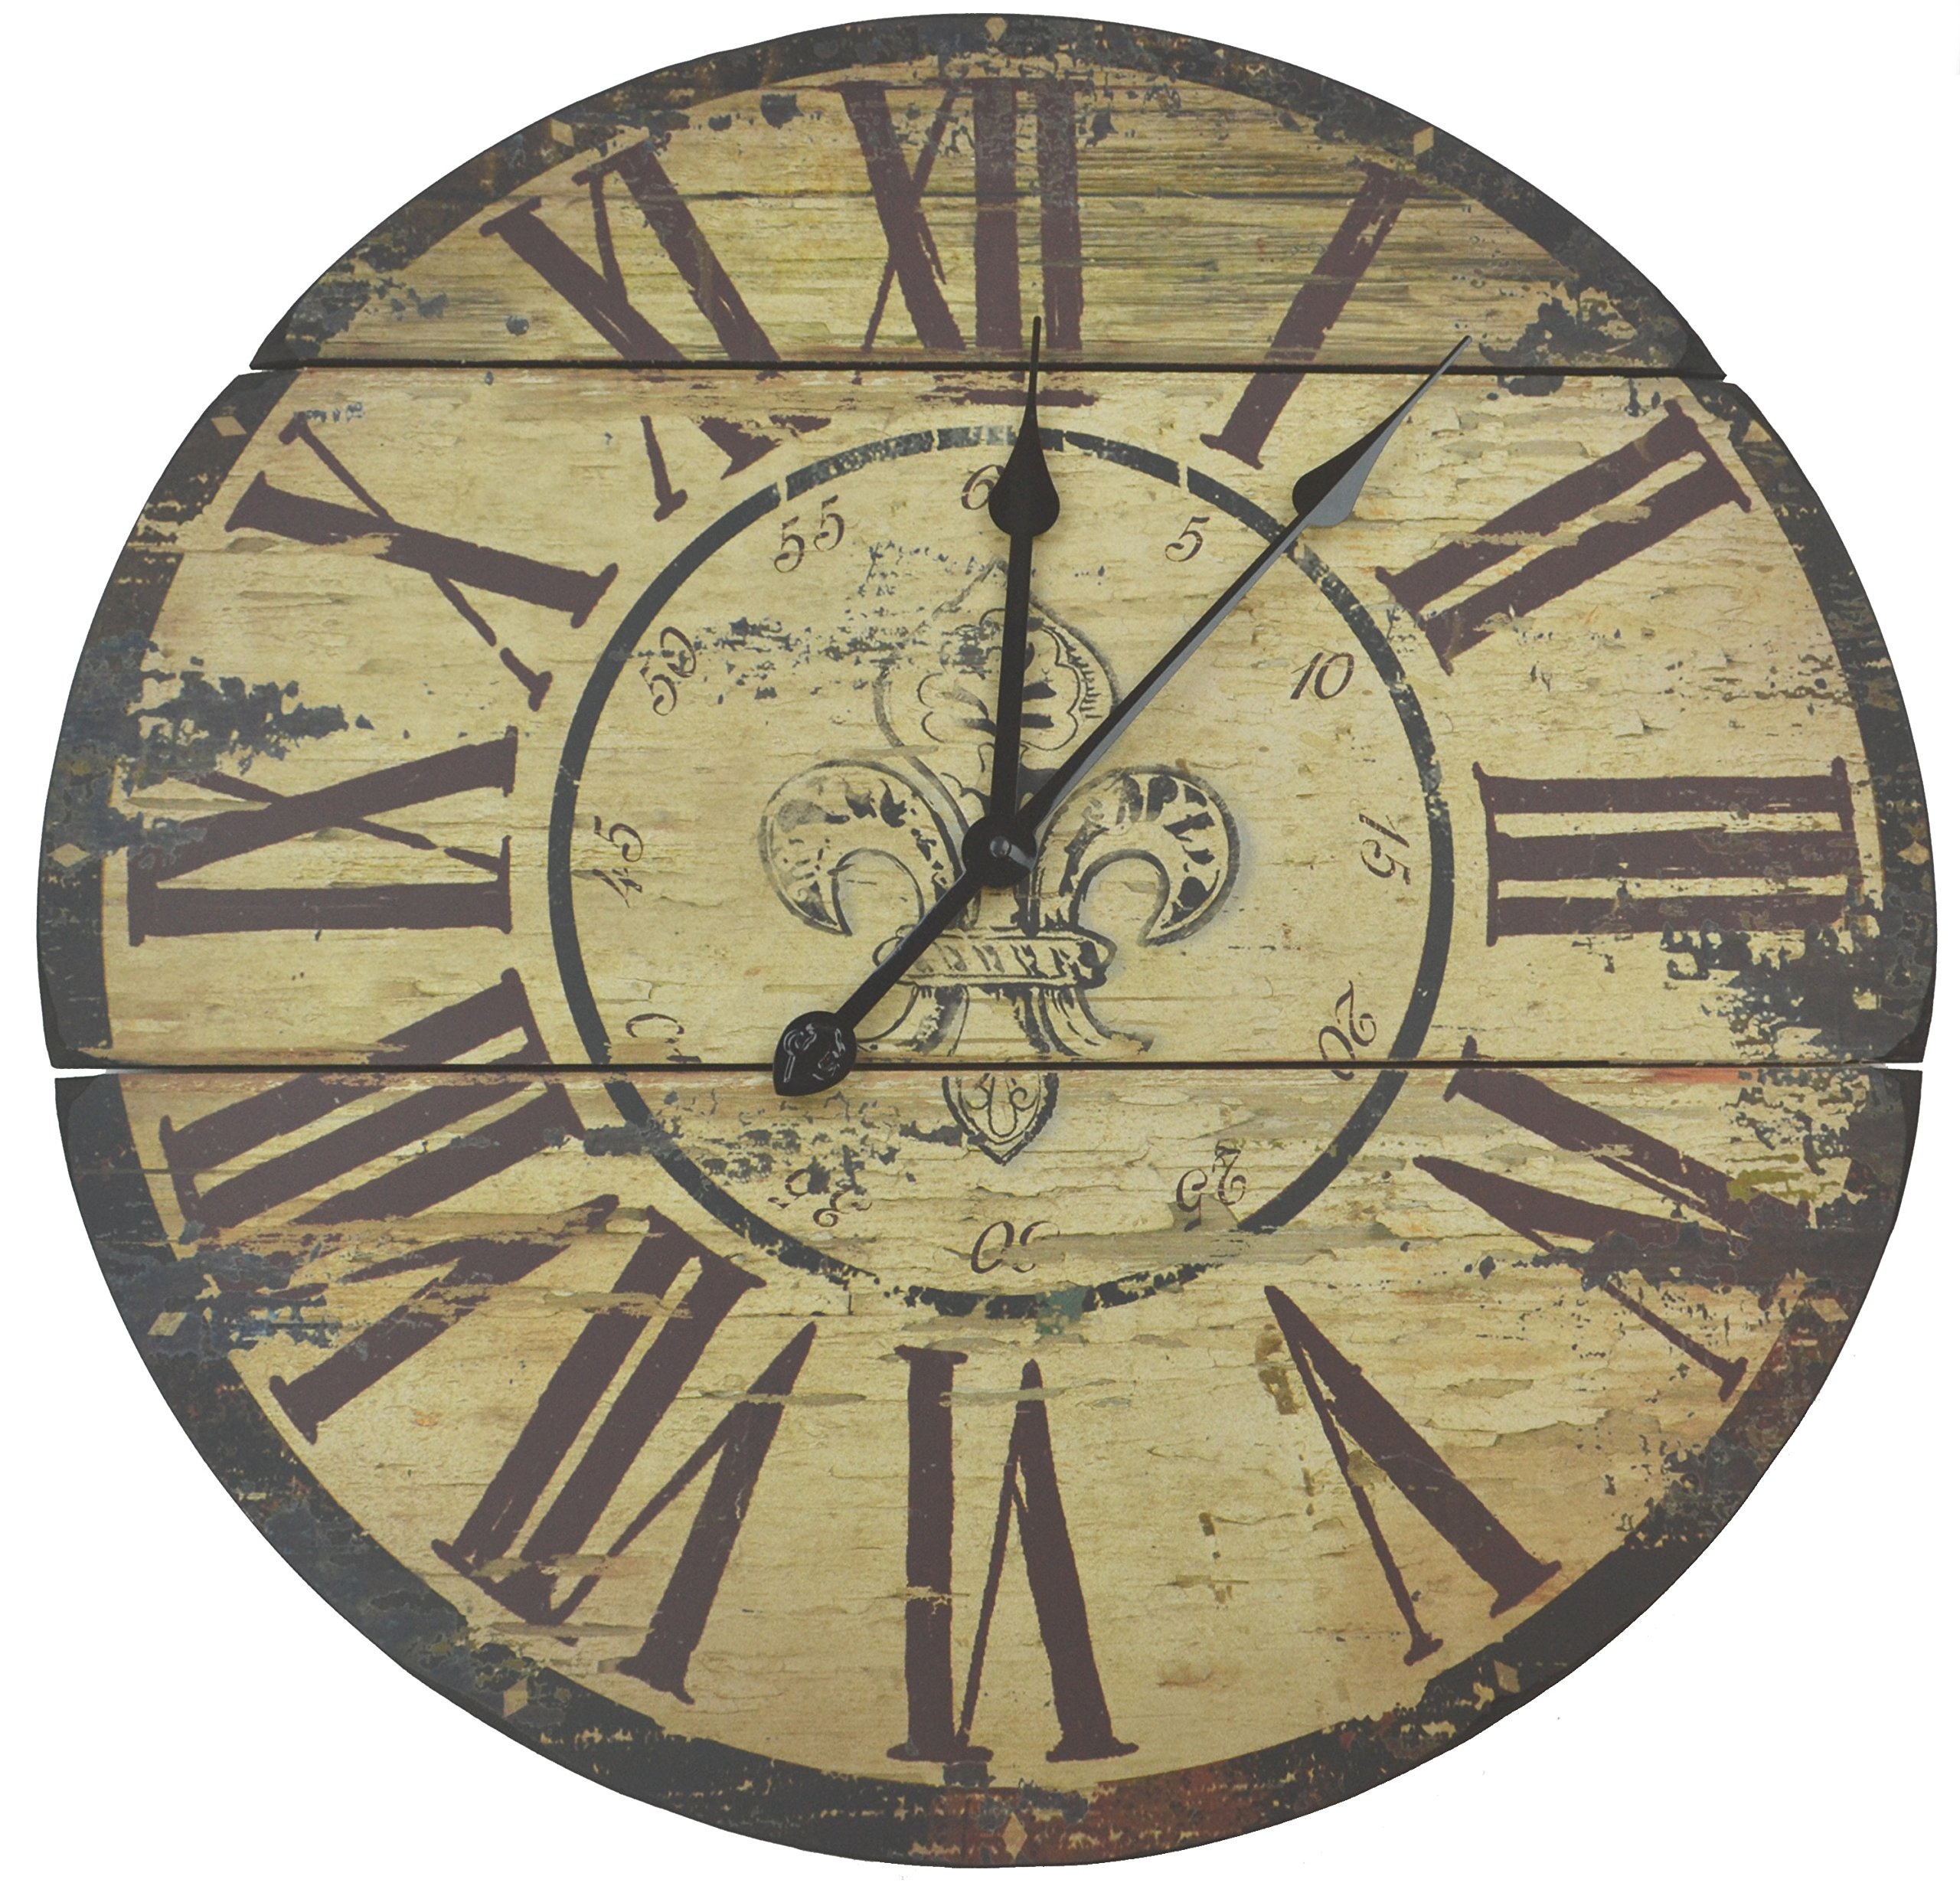 Amazon Com Lulu Decor Fleur De Lis Wood Wall Clock Rustic Round Clock 23 5 With Roman Numerals For Living Room Office Space Home Kitchen